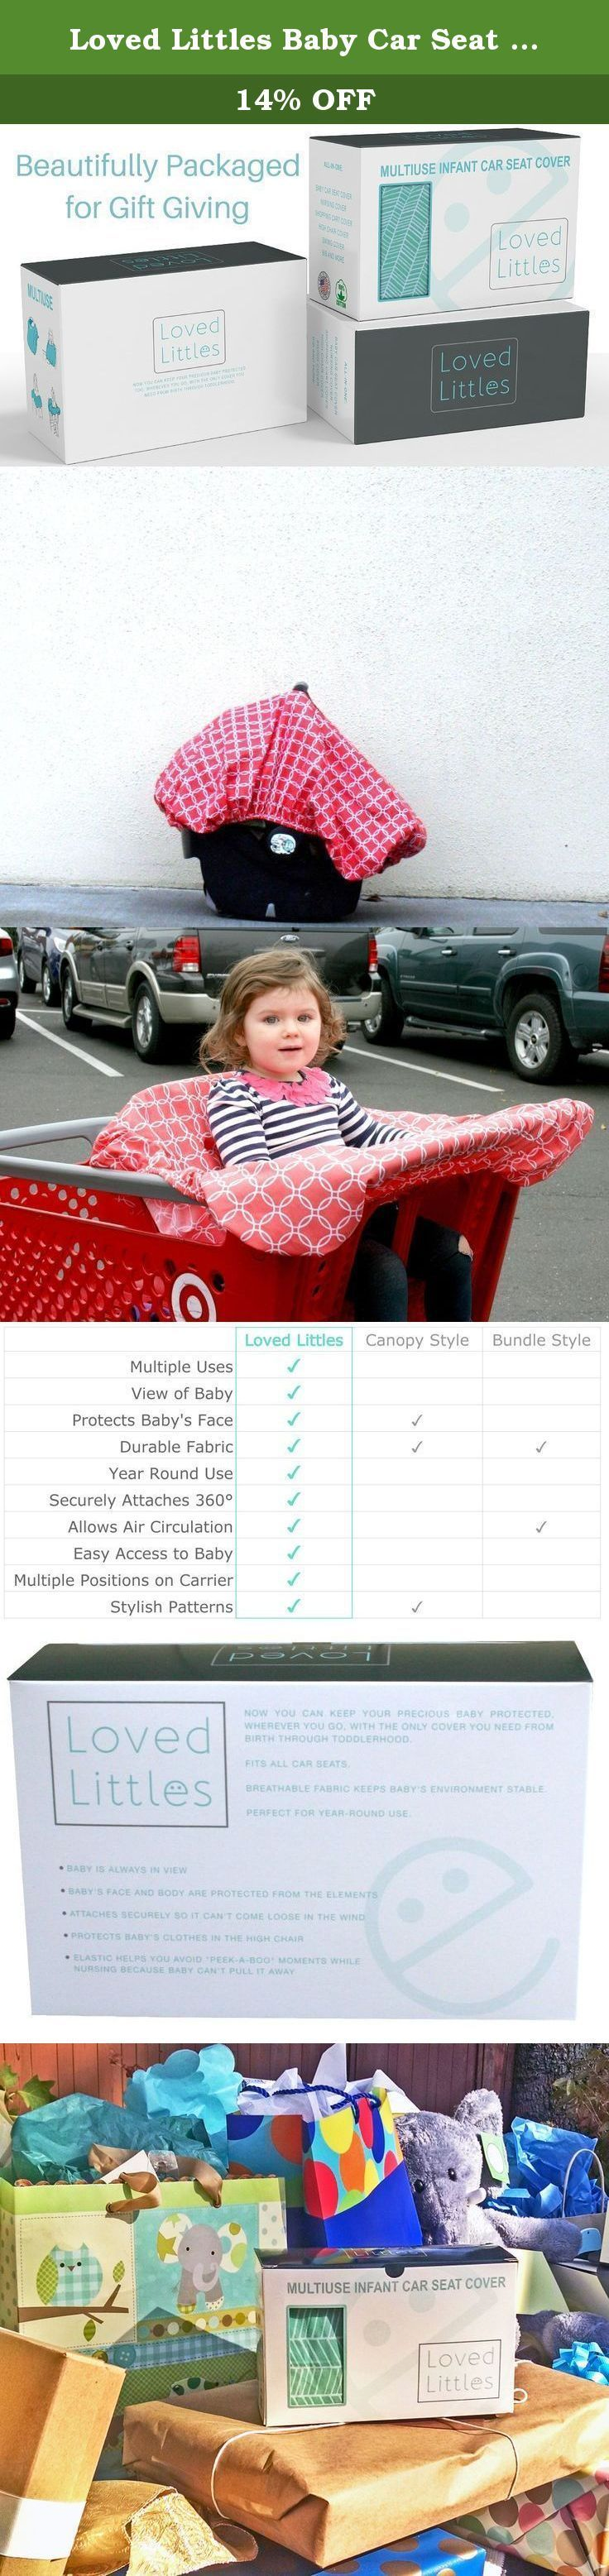 Awesome Cars accessories 2017: Loved Littles Baby Car Seat Cover, Made in the USA, 4-in-1 Infant Carrier, Shopp...  Canopies & Covers, Accessories, Car Seats & Accessories, Baby Products Check more at http://autoboard.pro/2017/2017/04/11/cars-accessories-2017-loved-littles-baby-car-seat-cover-made-in-the-usa-4-in-1-infant-carrier-shopp-canopies-covers-accessories-car-seats-accessories-baby-products/